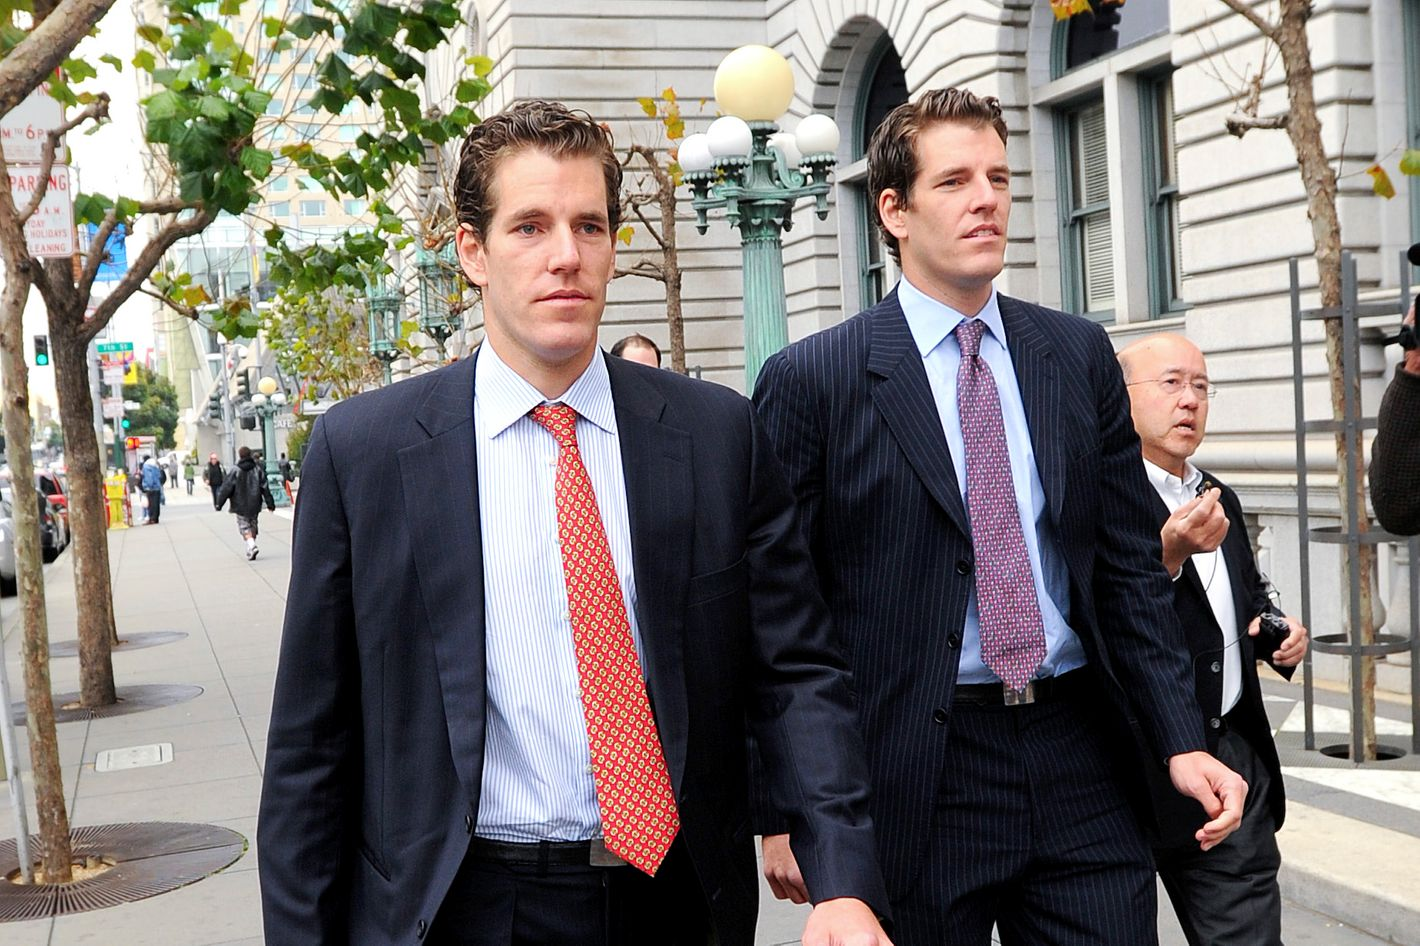 Cameron Winklevoss, left, and his twin brother Tyler leave a federal appeals court in San Francisco, California, U.S., on Tuesday, Jan. 11, 2011. Facebook Inc.'s settlement of claims that its founder Mark Zuckerberg stole the idea for what became the world's largest social-networking website should be undone, former college classmates of Zuckerberg told an appeals court. Photographer: Noah Berger/Bloomberg via Getty Images *** Local Caption *** Cameron Winklevoss; Tyler Winklevoss